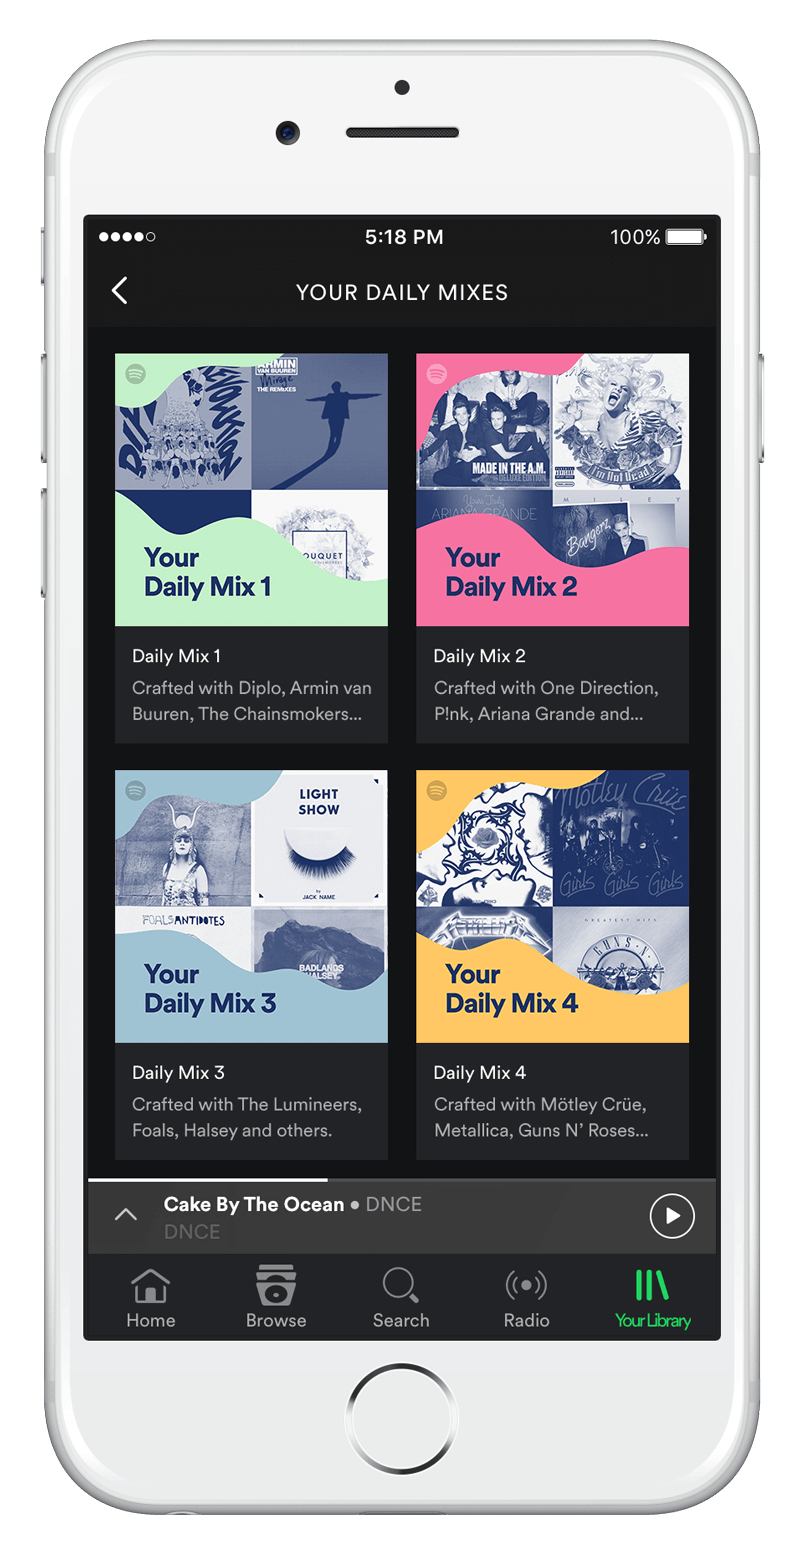 spotify-dailymix-device.png